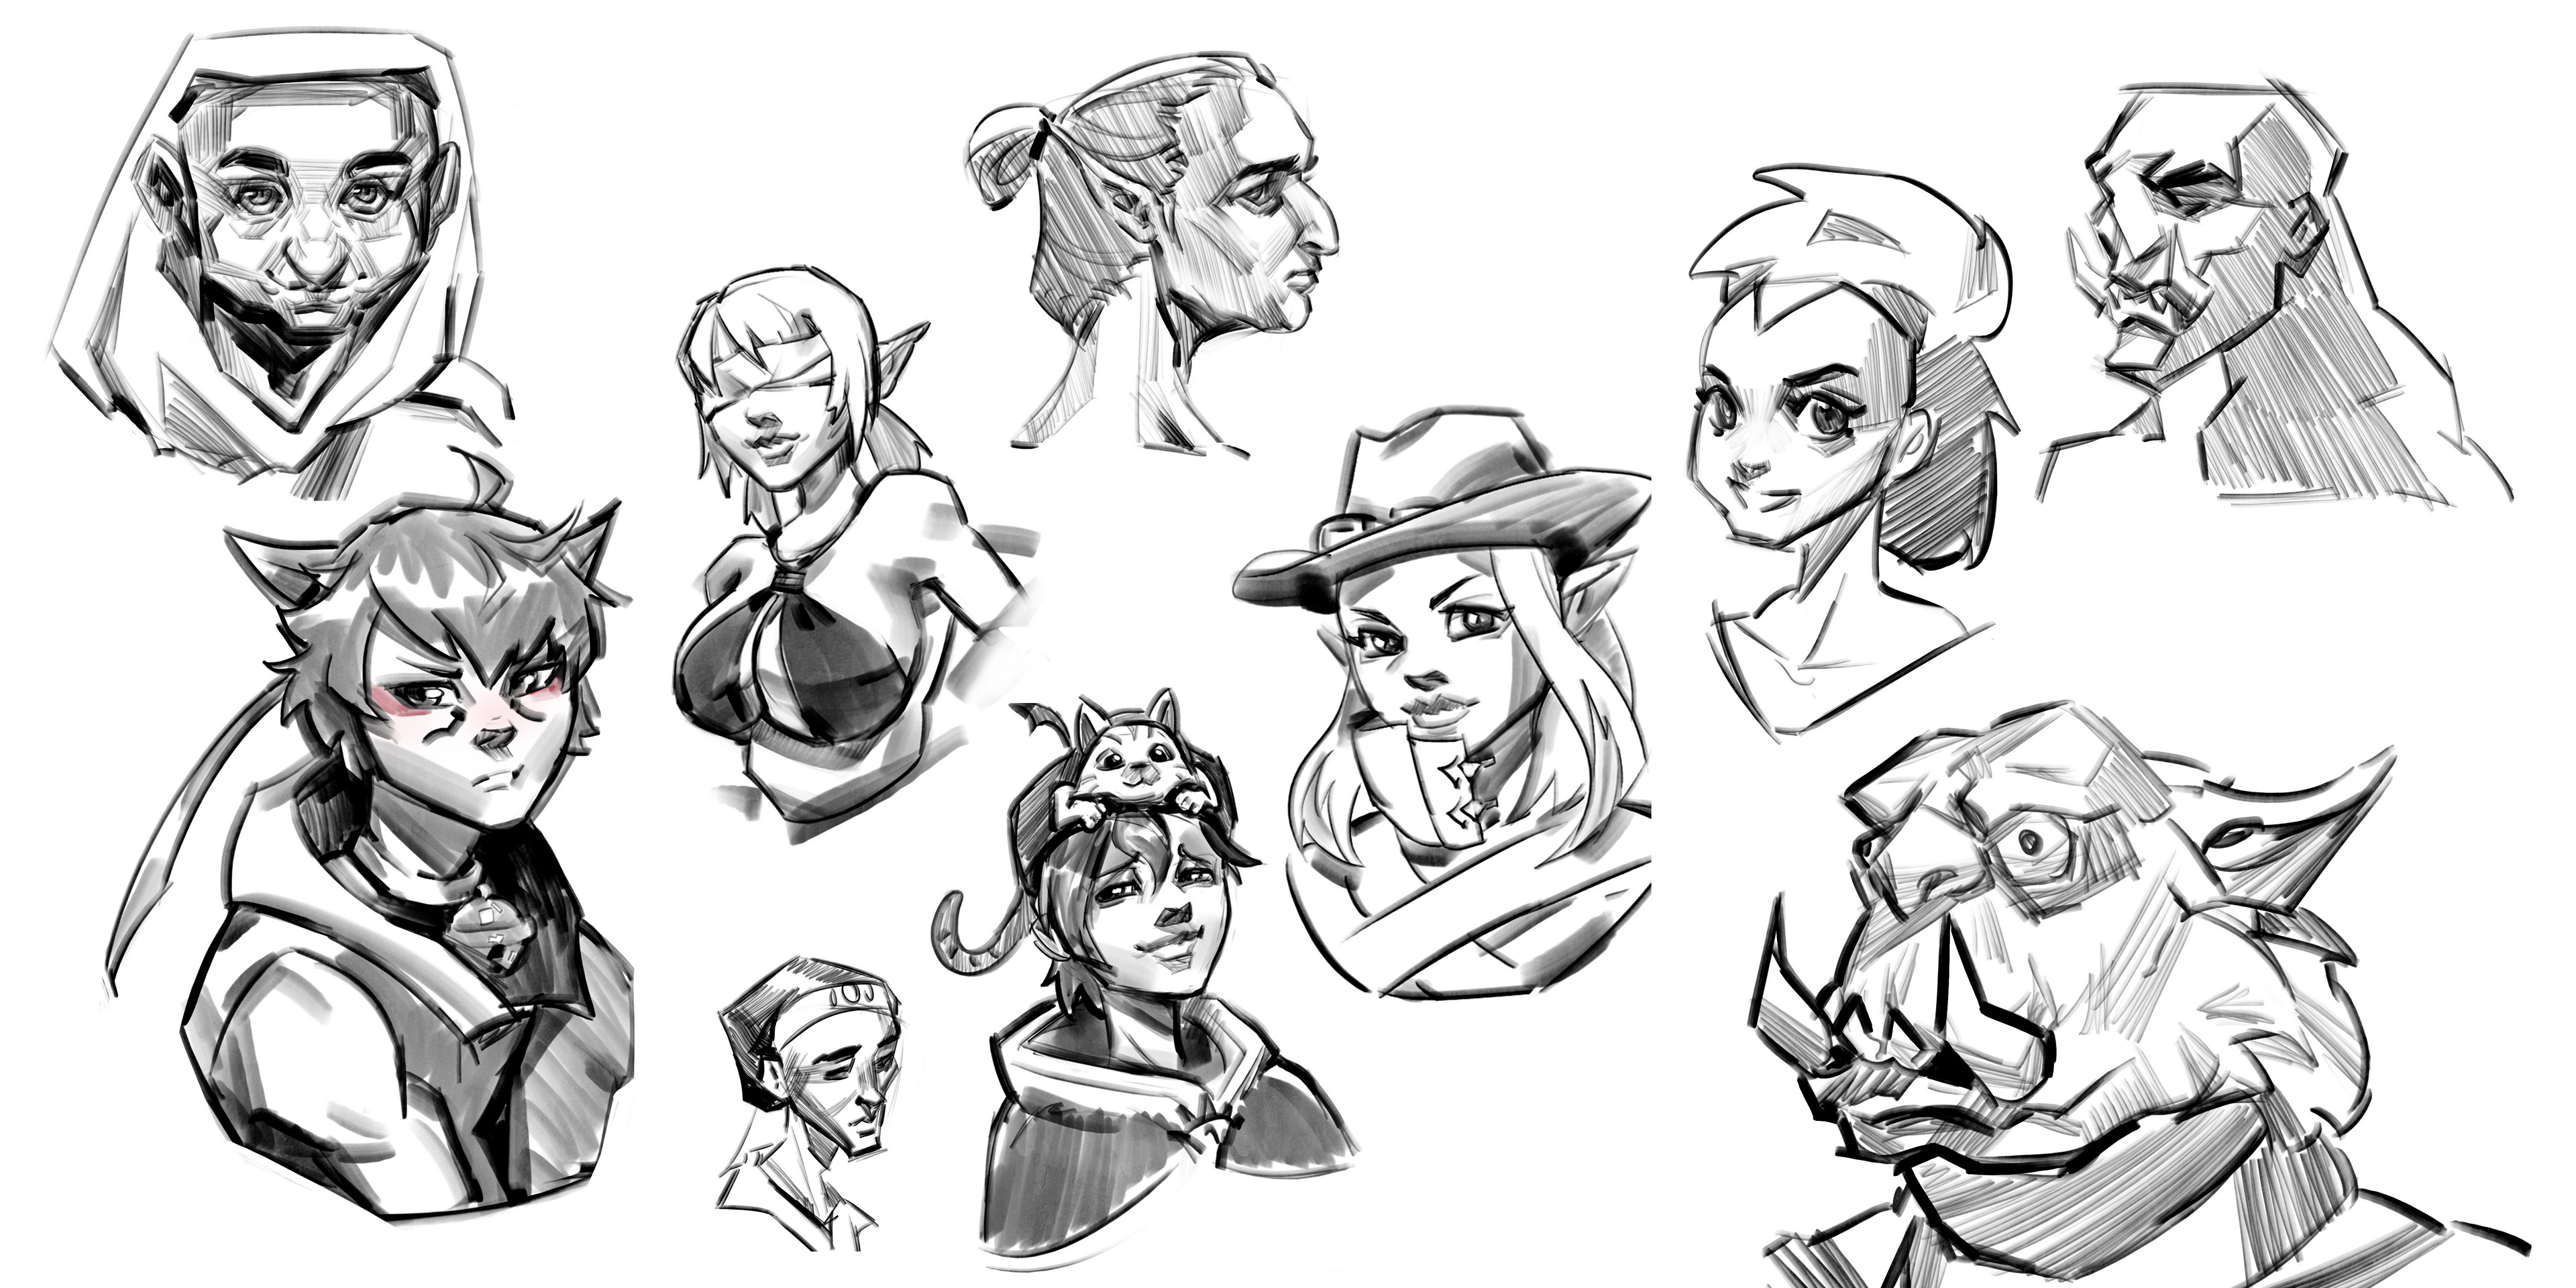 Stylized faces from ref and imagination!